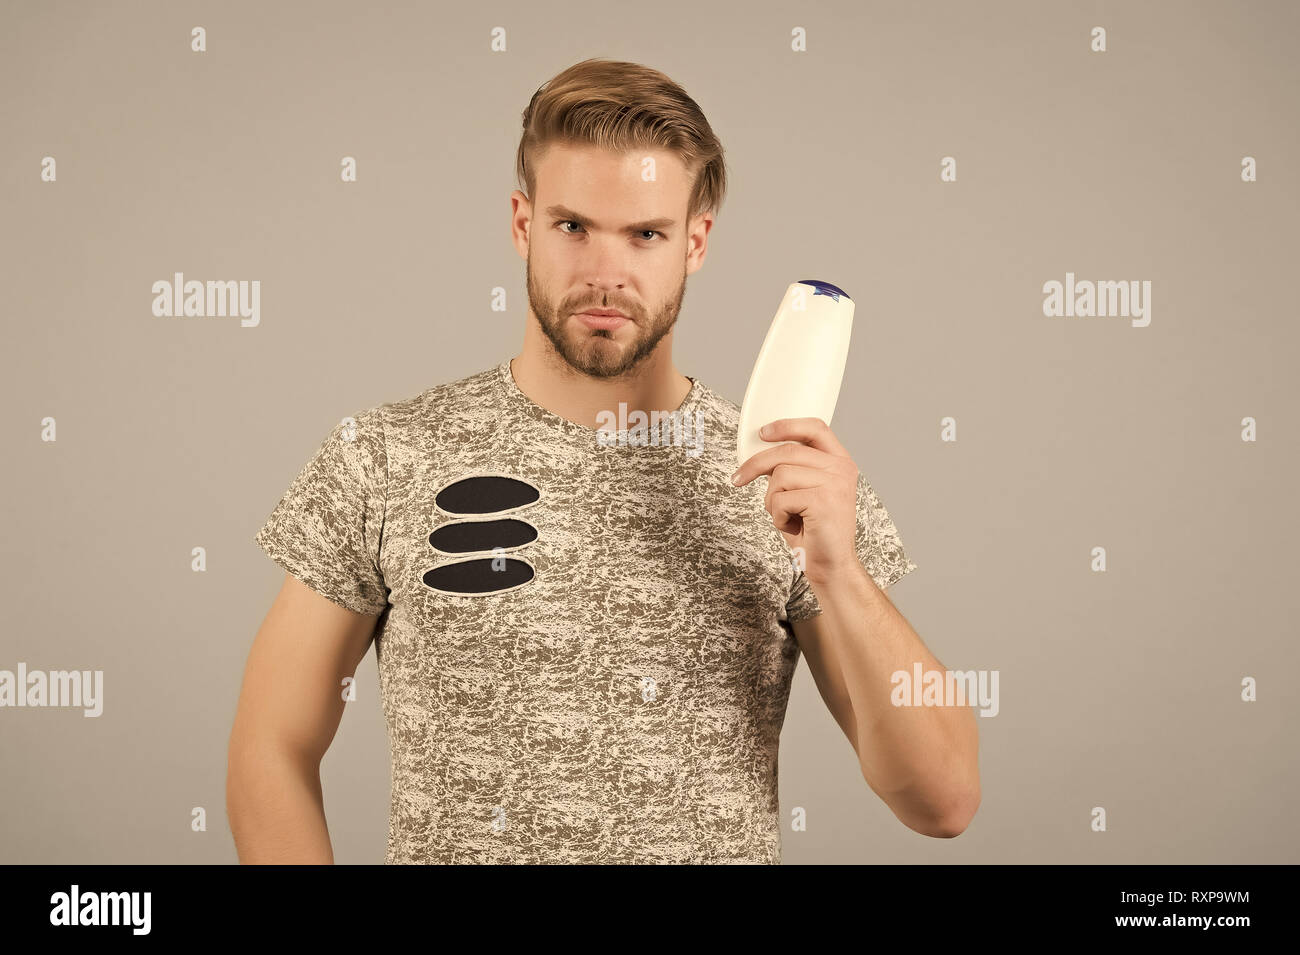 Man strict face holds shampoo bottle, grey background. Man enjoy freshness after washing hair with shampoo. Hair care and beauty supplies concept. Guy with hairstyle holds bottle shampoo, copy space. Stock Photo